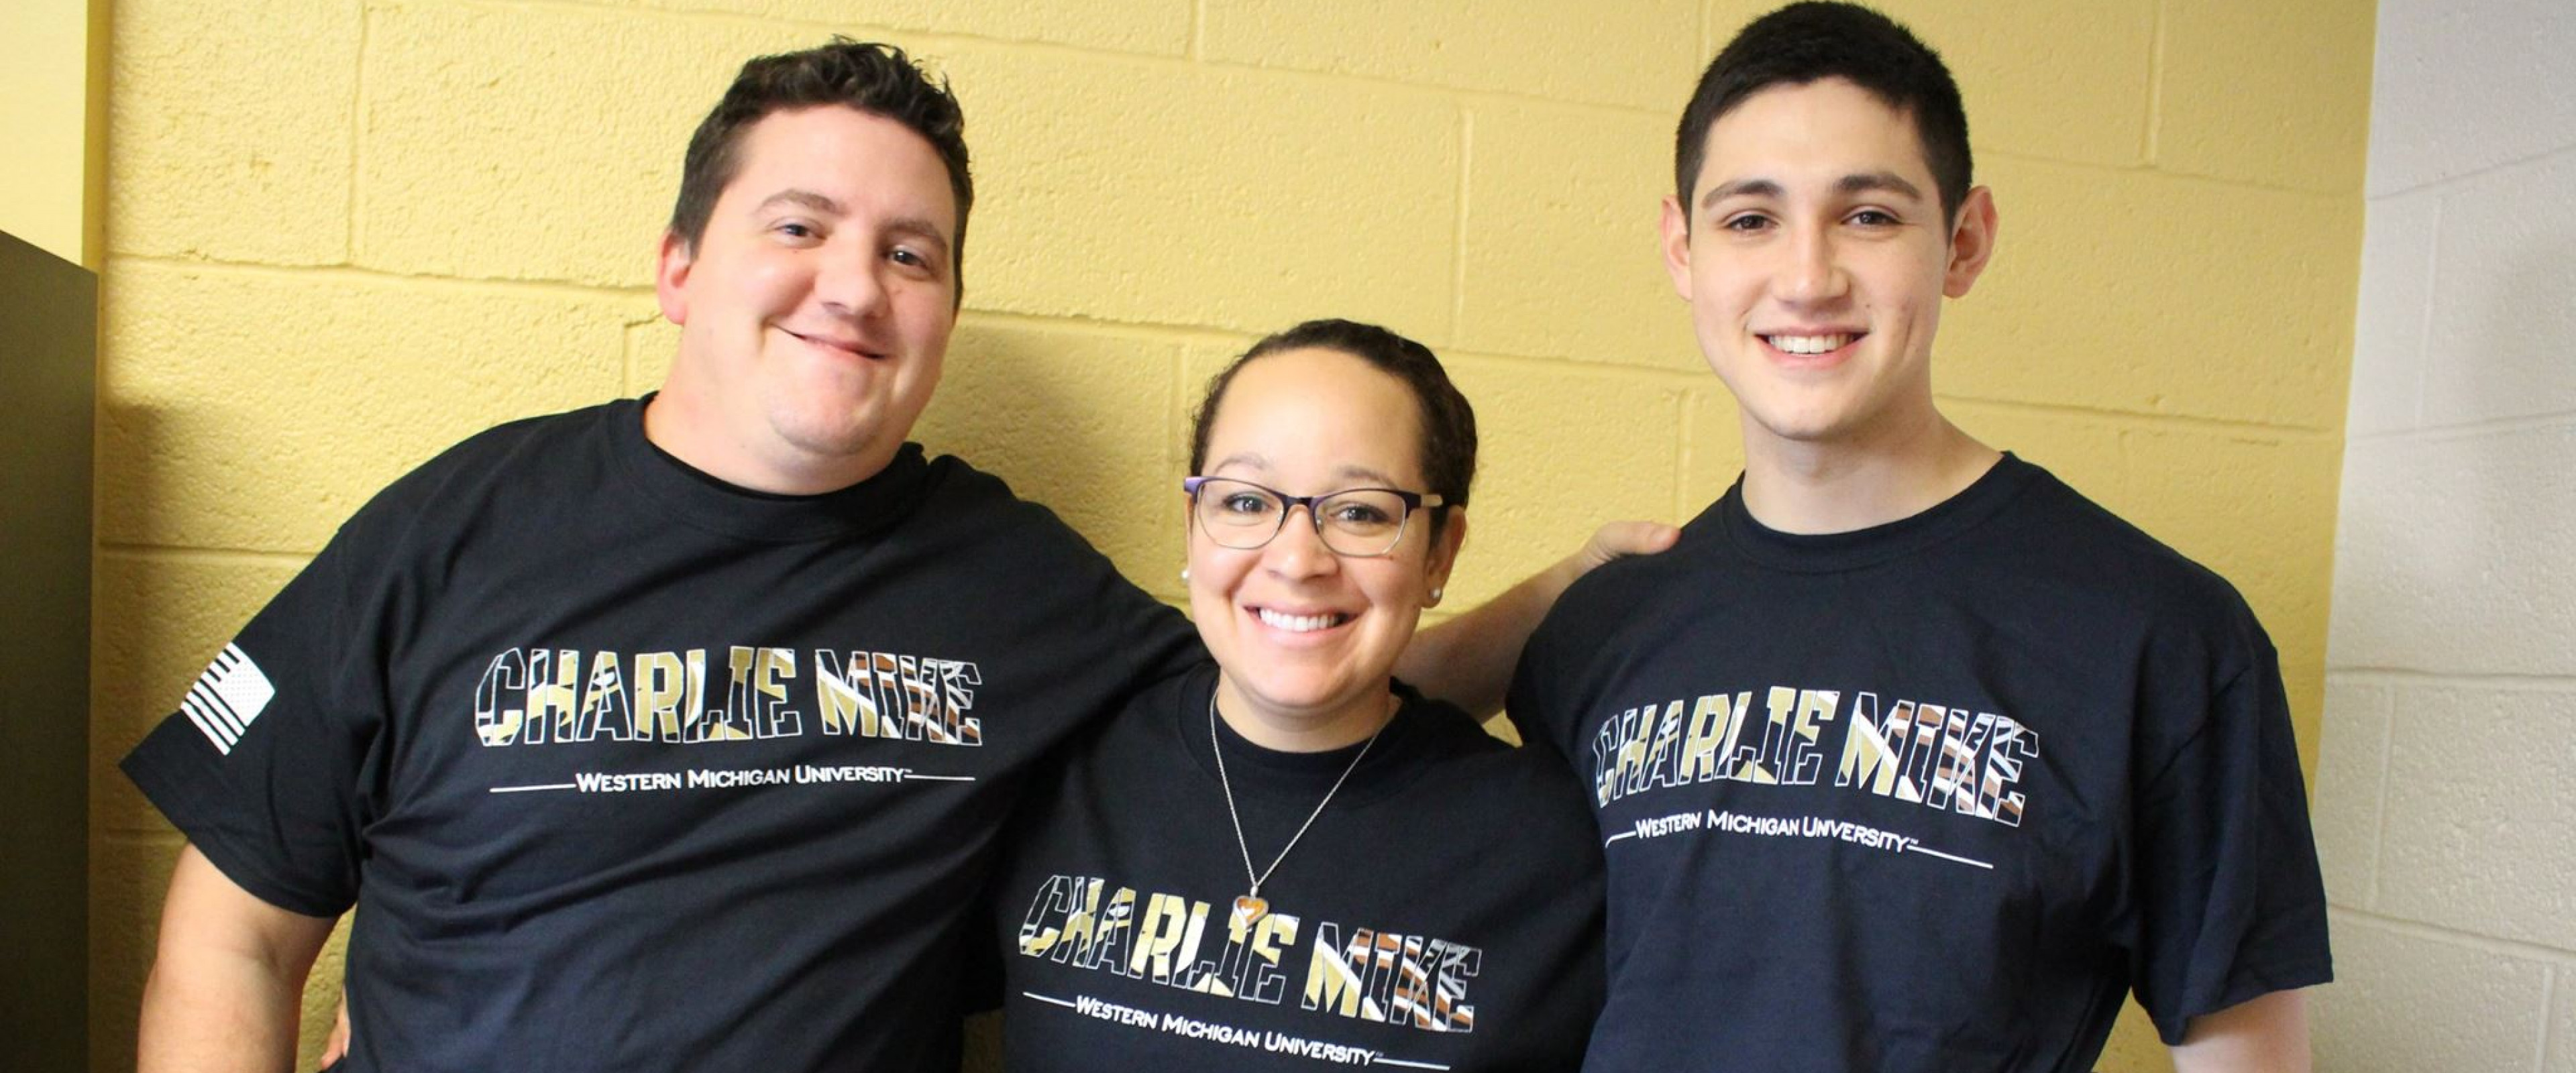 """Three smiling students wearing Charlie Mike t-shirts, WMU's first Universitywide """"unit"""" t-shirt for military students"""